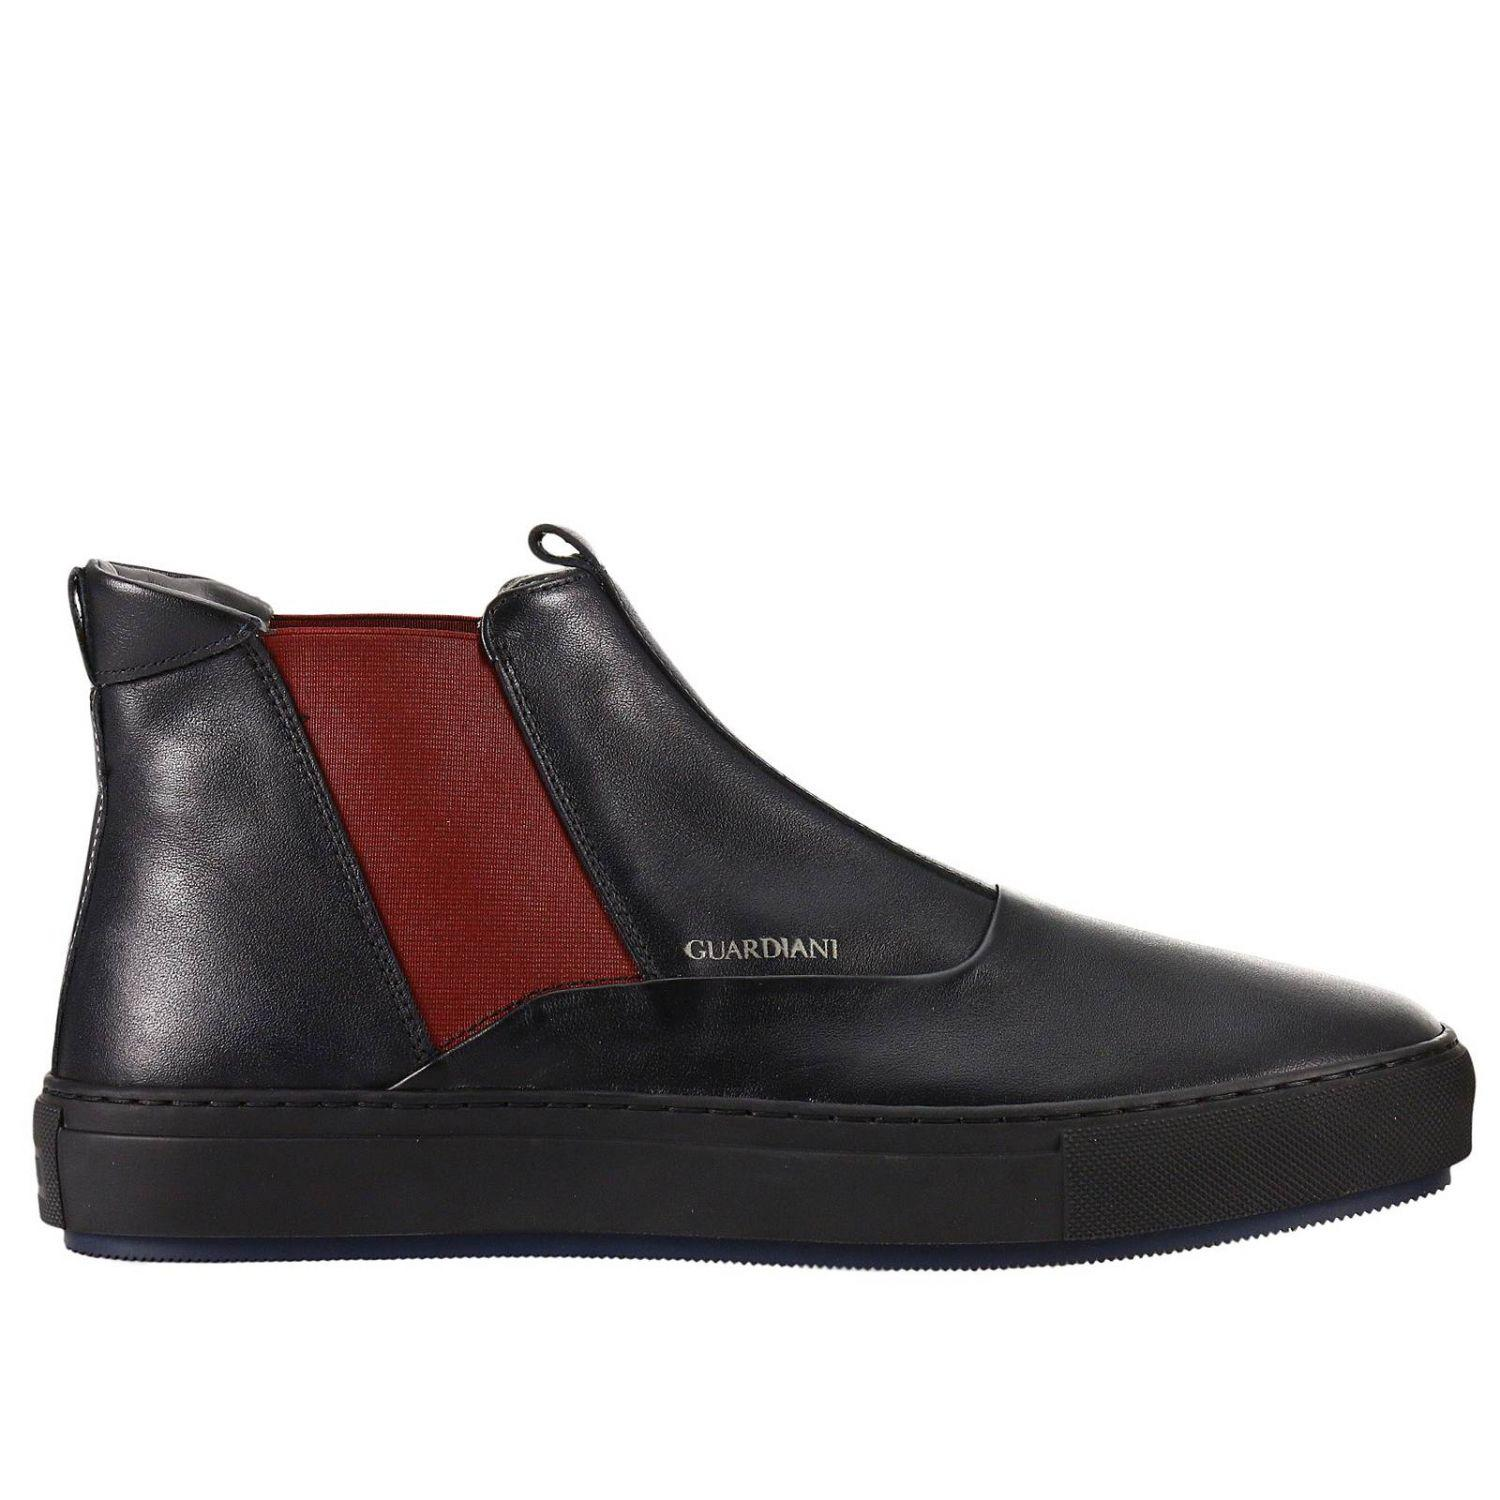 Alberto Guardiani Lace Up Shoes Soho Leather Wingtip Sole